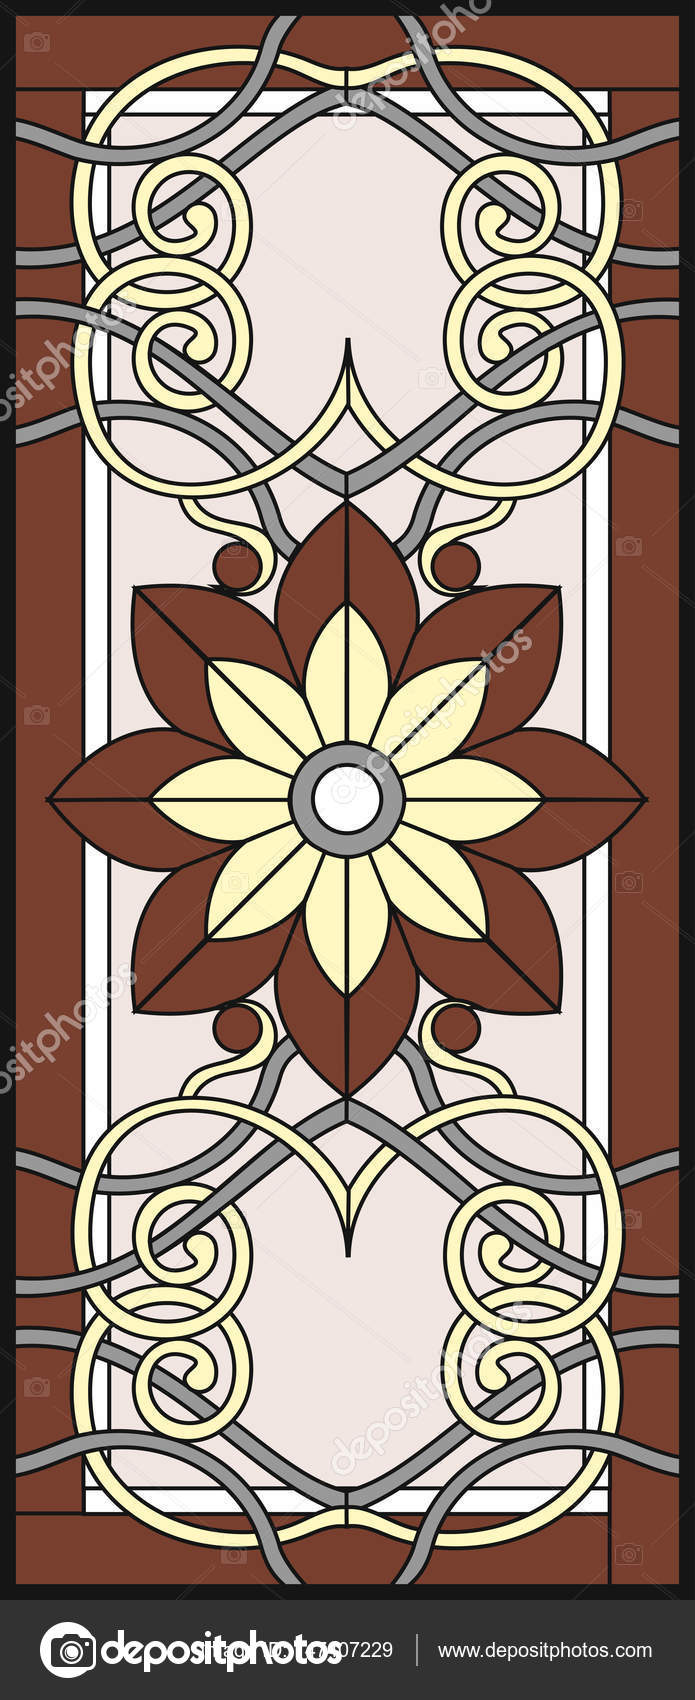 Stock Ilration Stained Gl Window In A Rectangular Frame Flower Arrangements And Ornaments Vector Graphics